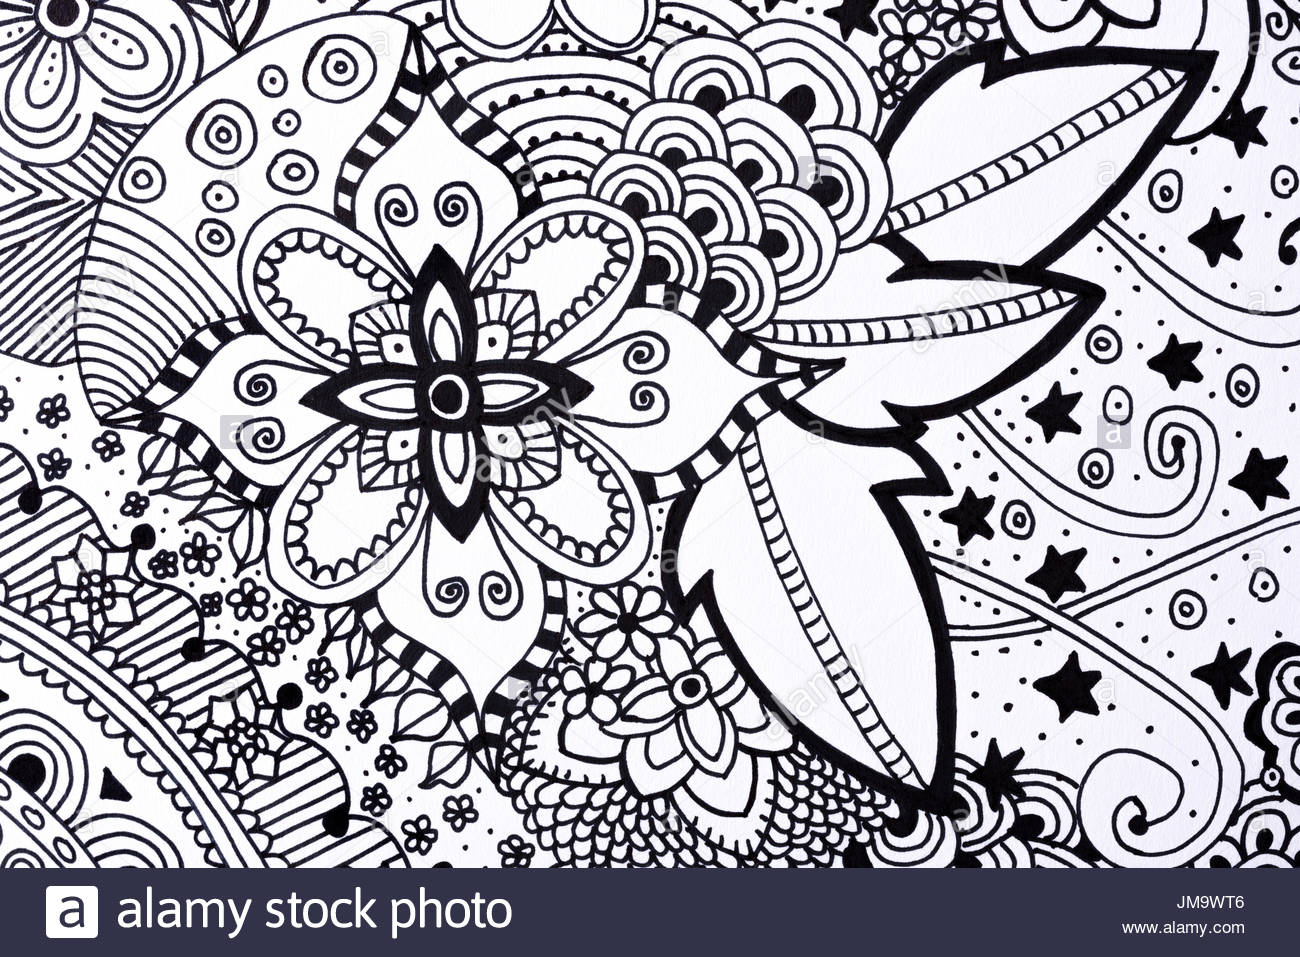 1300x957 Adult Colouring Book Hand Drawn Illustration, New Stress Relieving